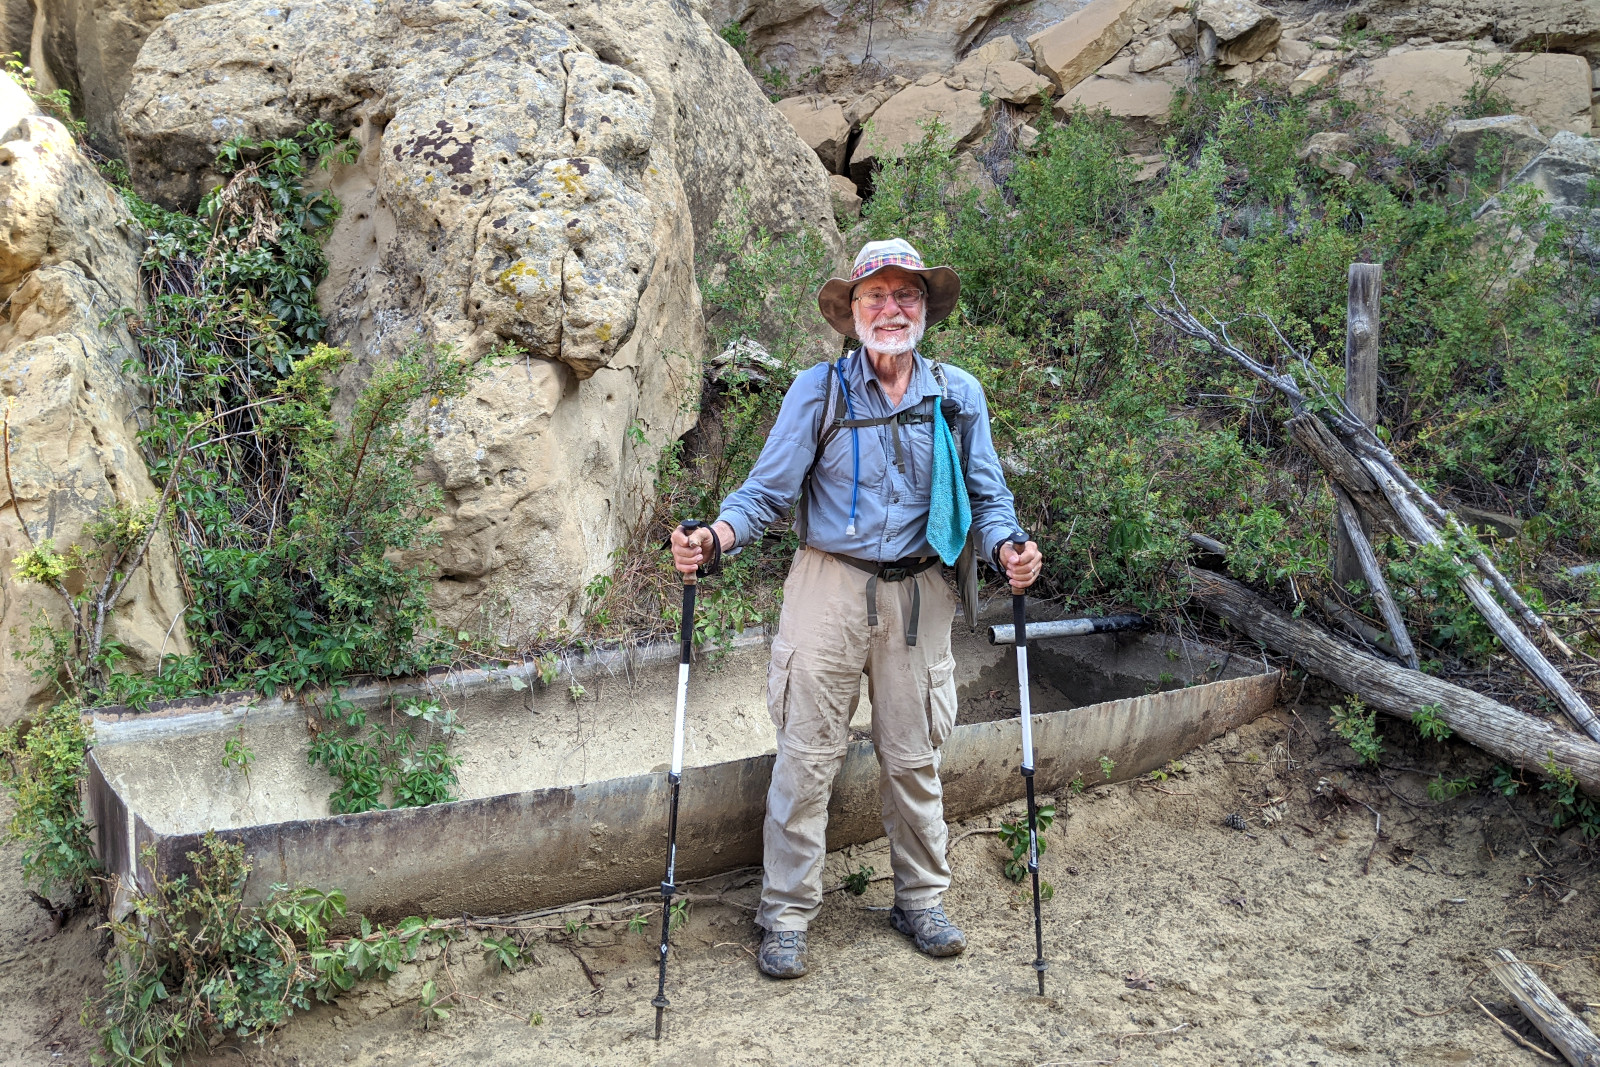 Dad (aka Tartan) returning to the spring, 15 miles south of Cuba, New Mexico